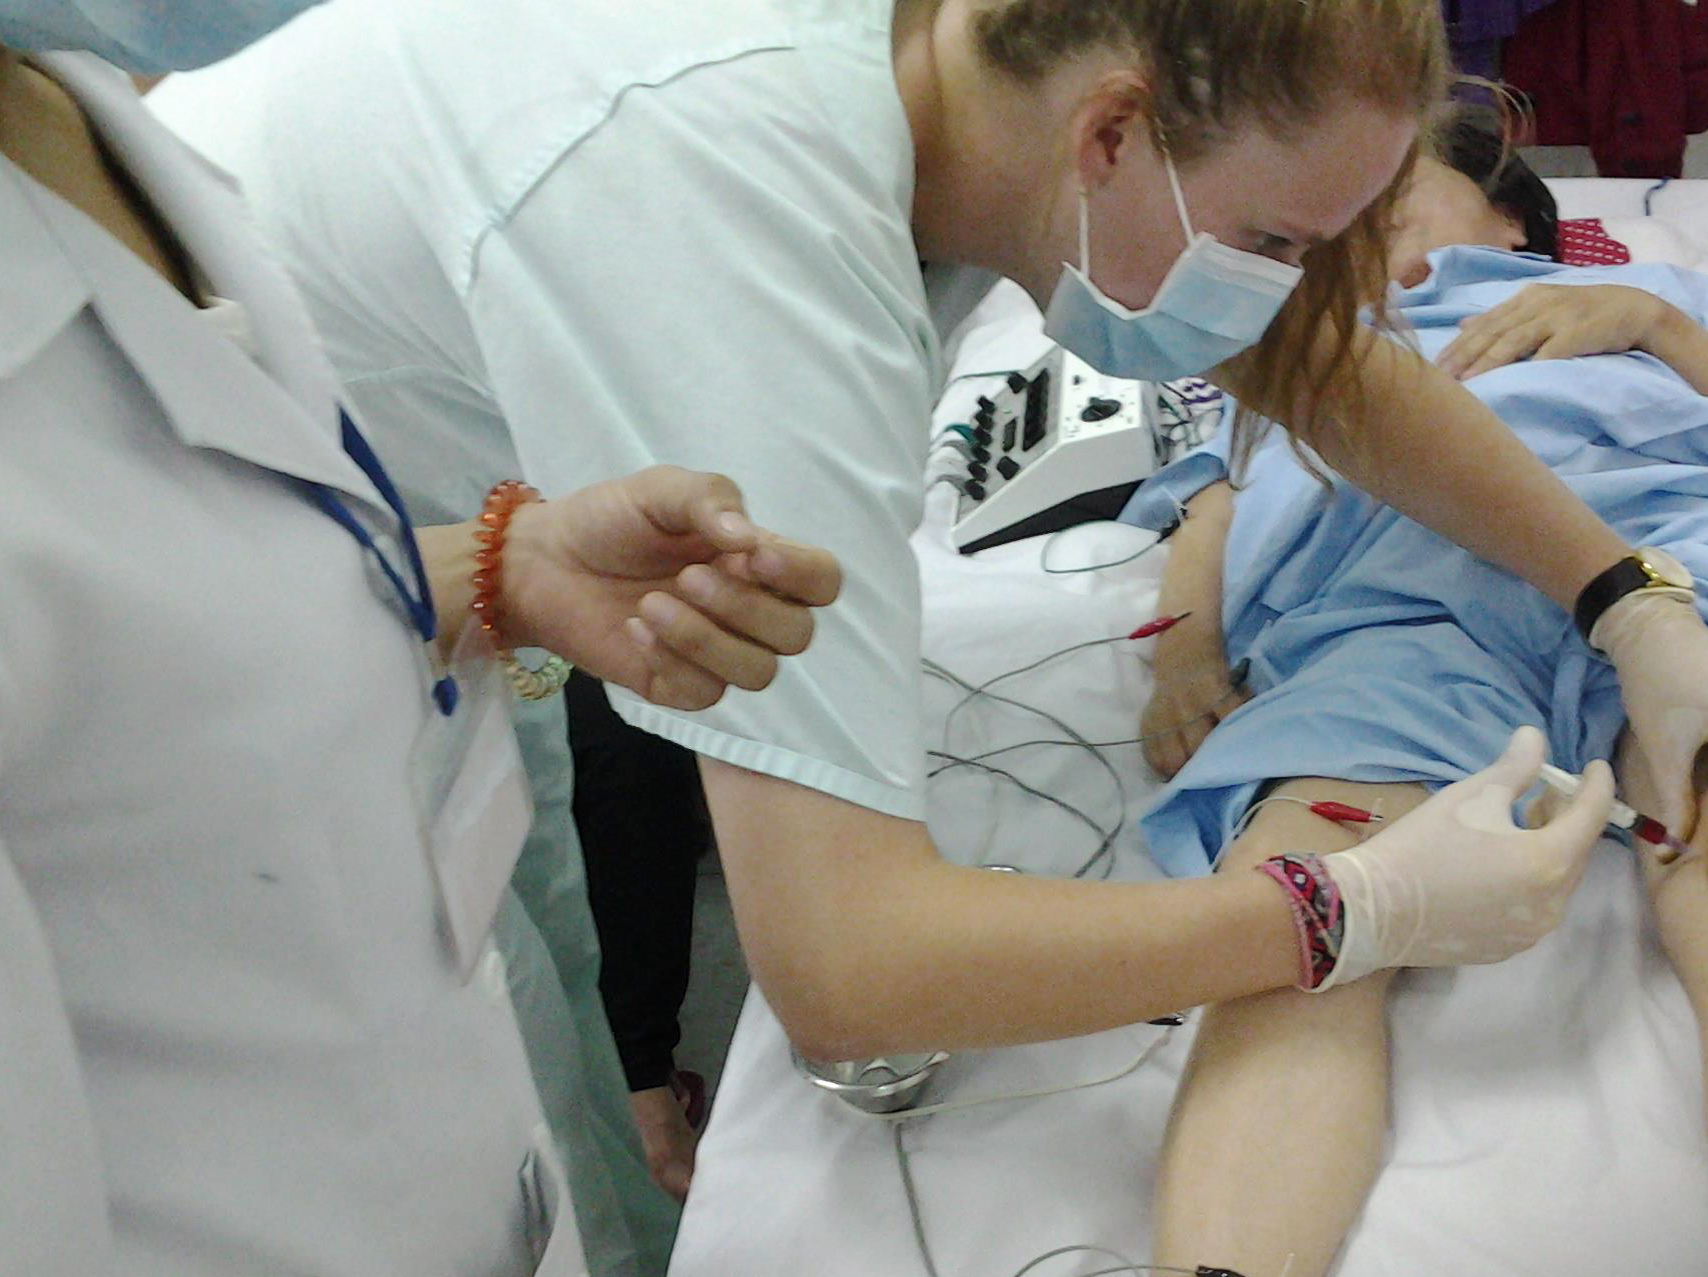 _Injecting a patient